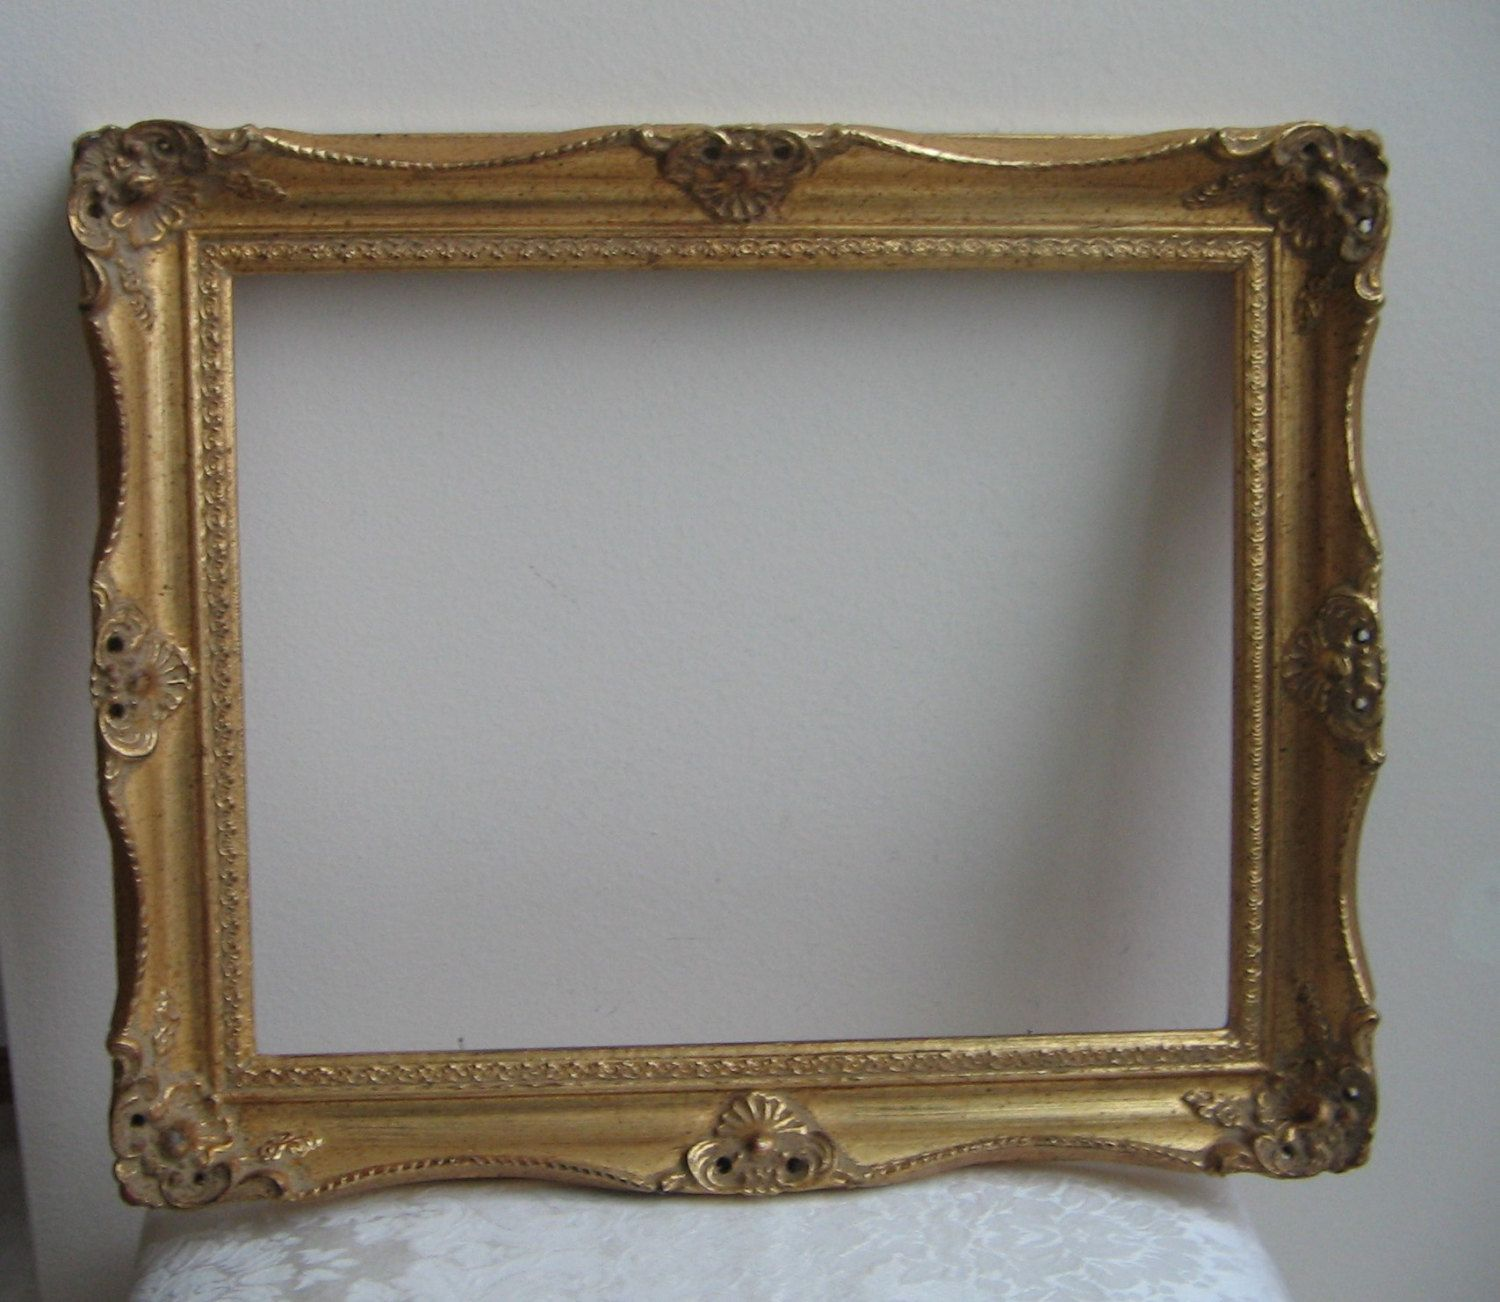 Vintage Large Picture Frame Ornate Gold Gilt Wood 14 X 17 With